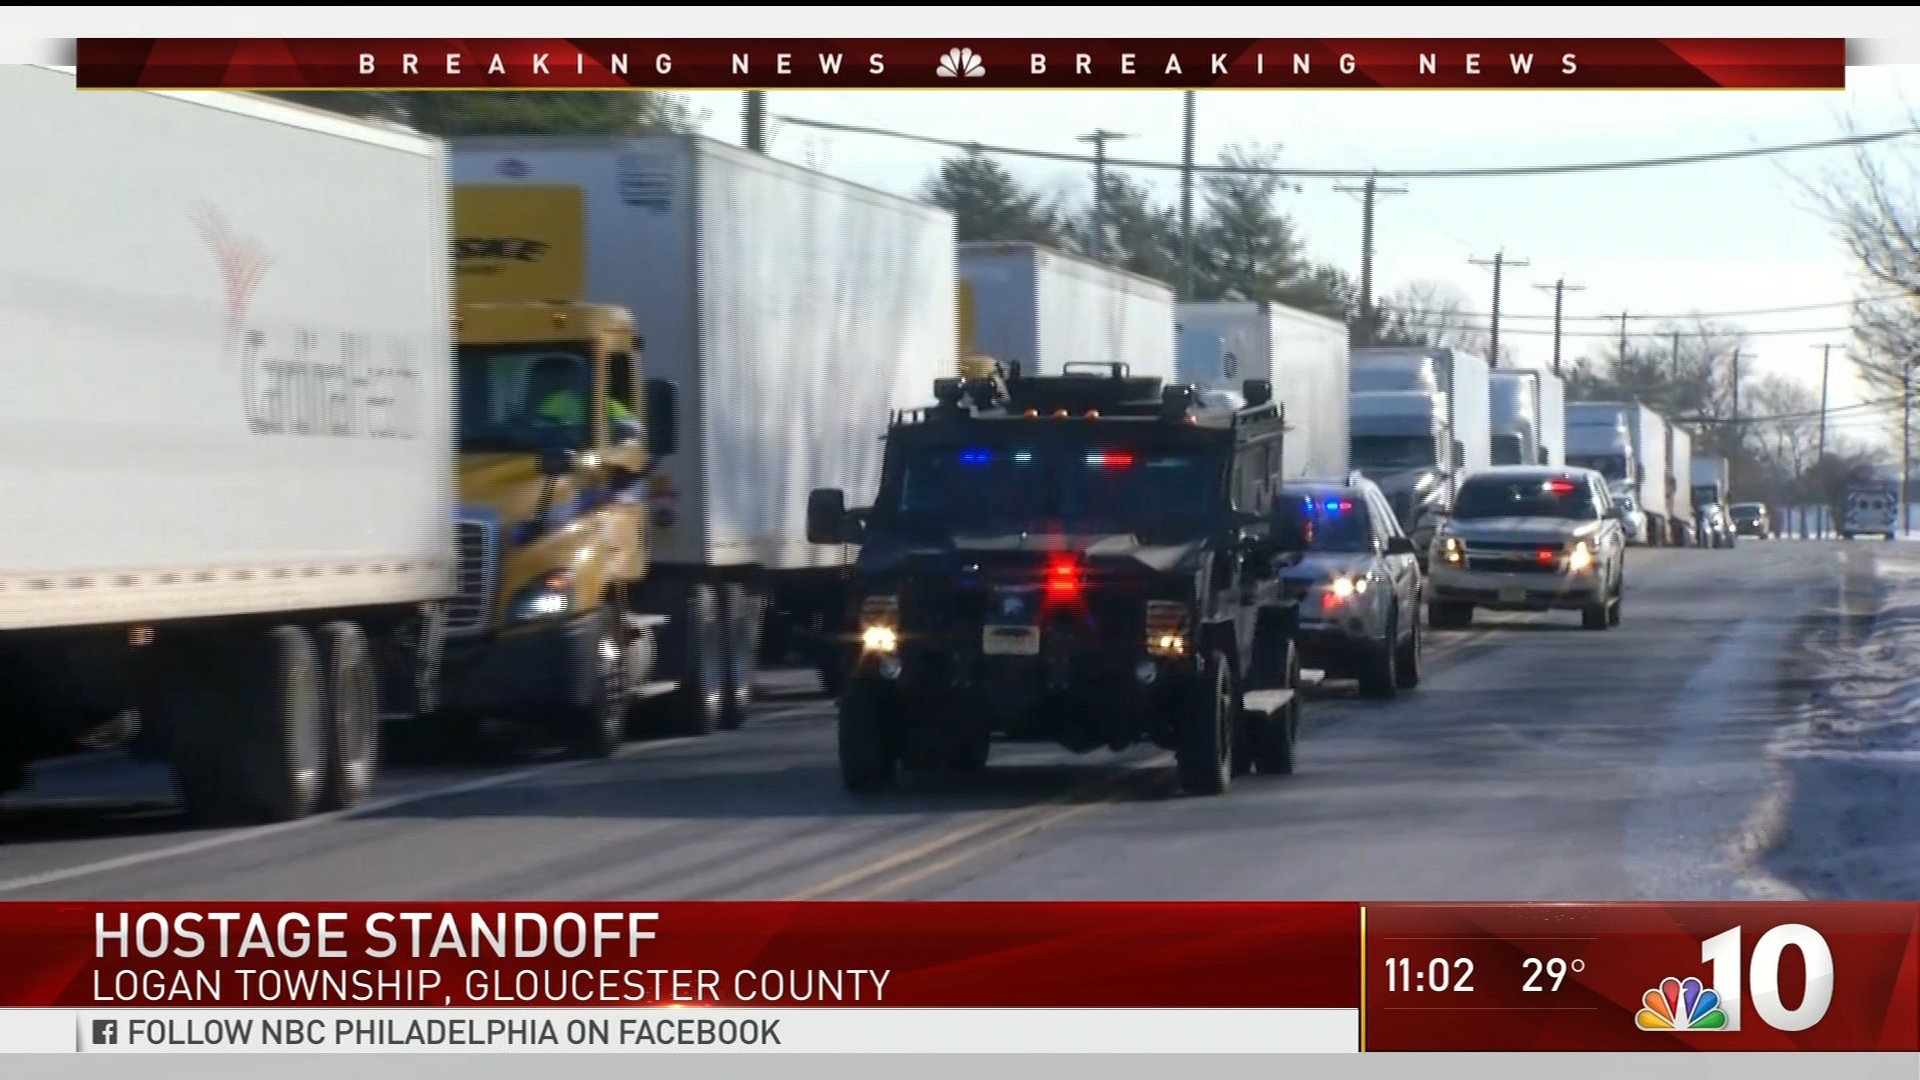 Armed Hostage Situation at New Jersey UPS Warehouse | NBC 10